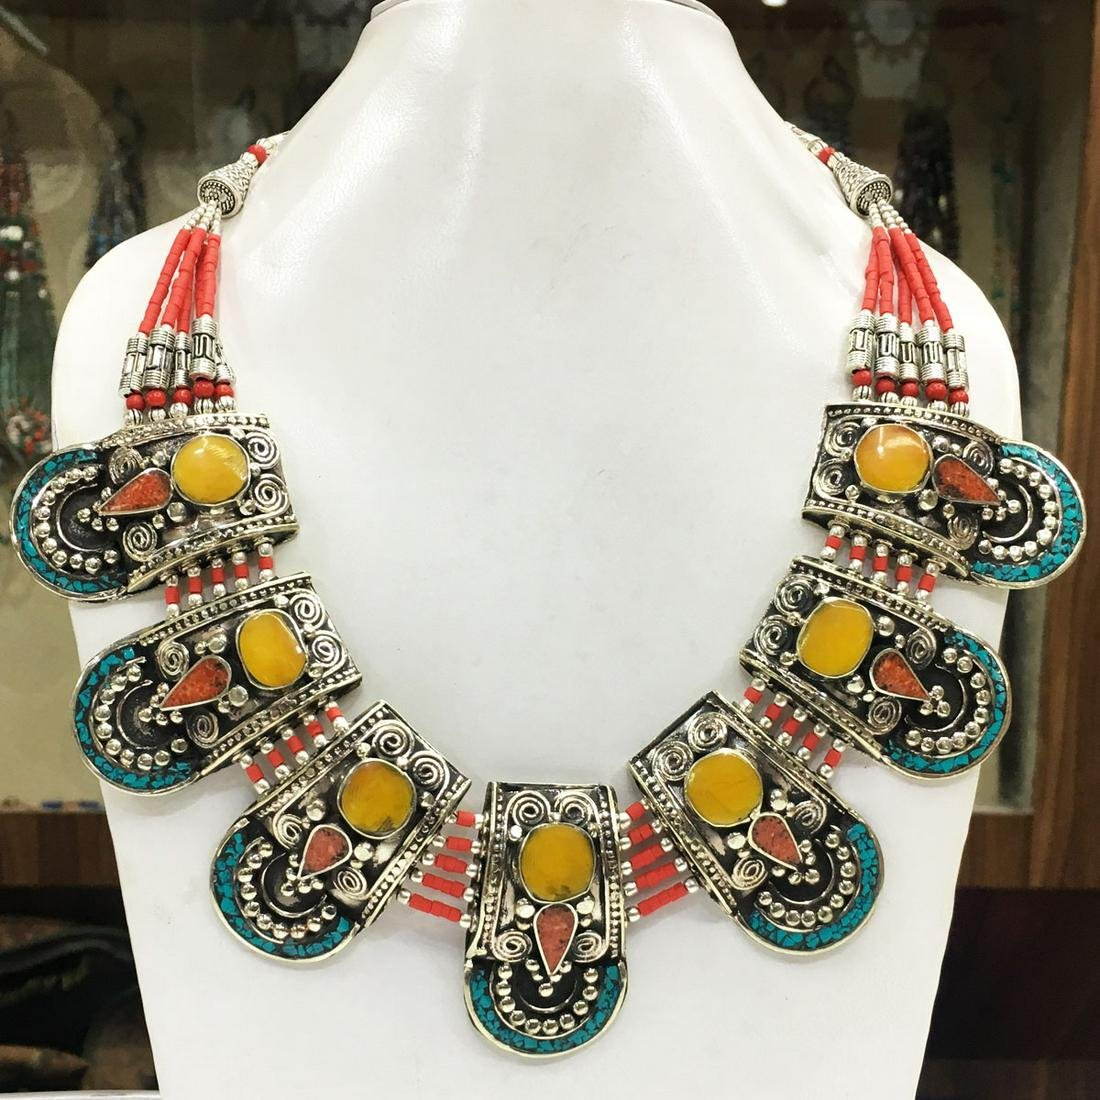 Women's Old Vintage Turquoise Tibetan Asian Necklace